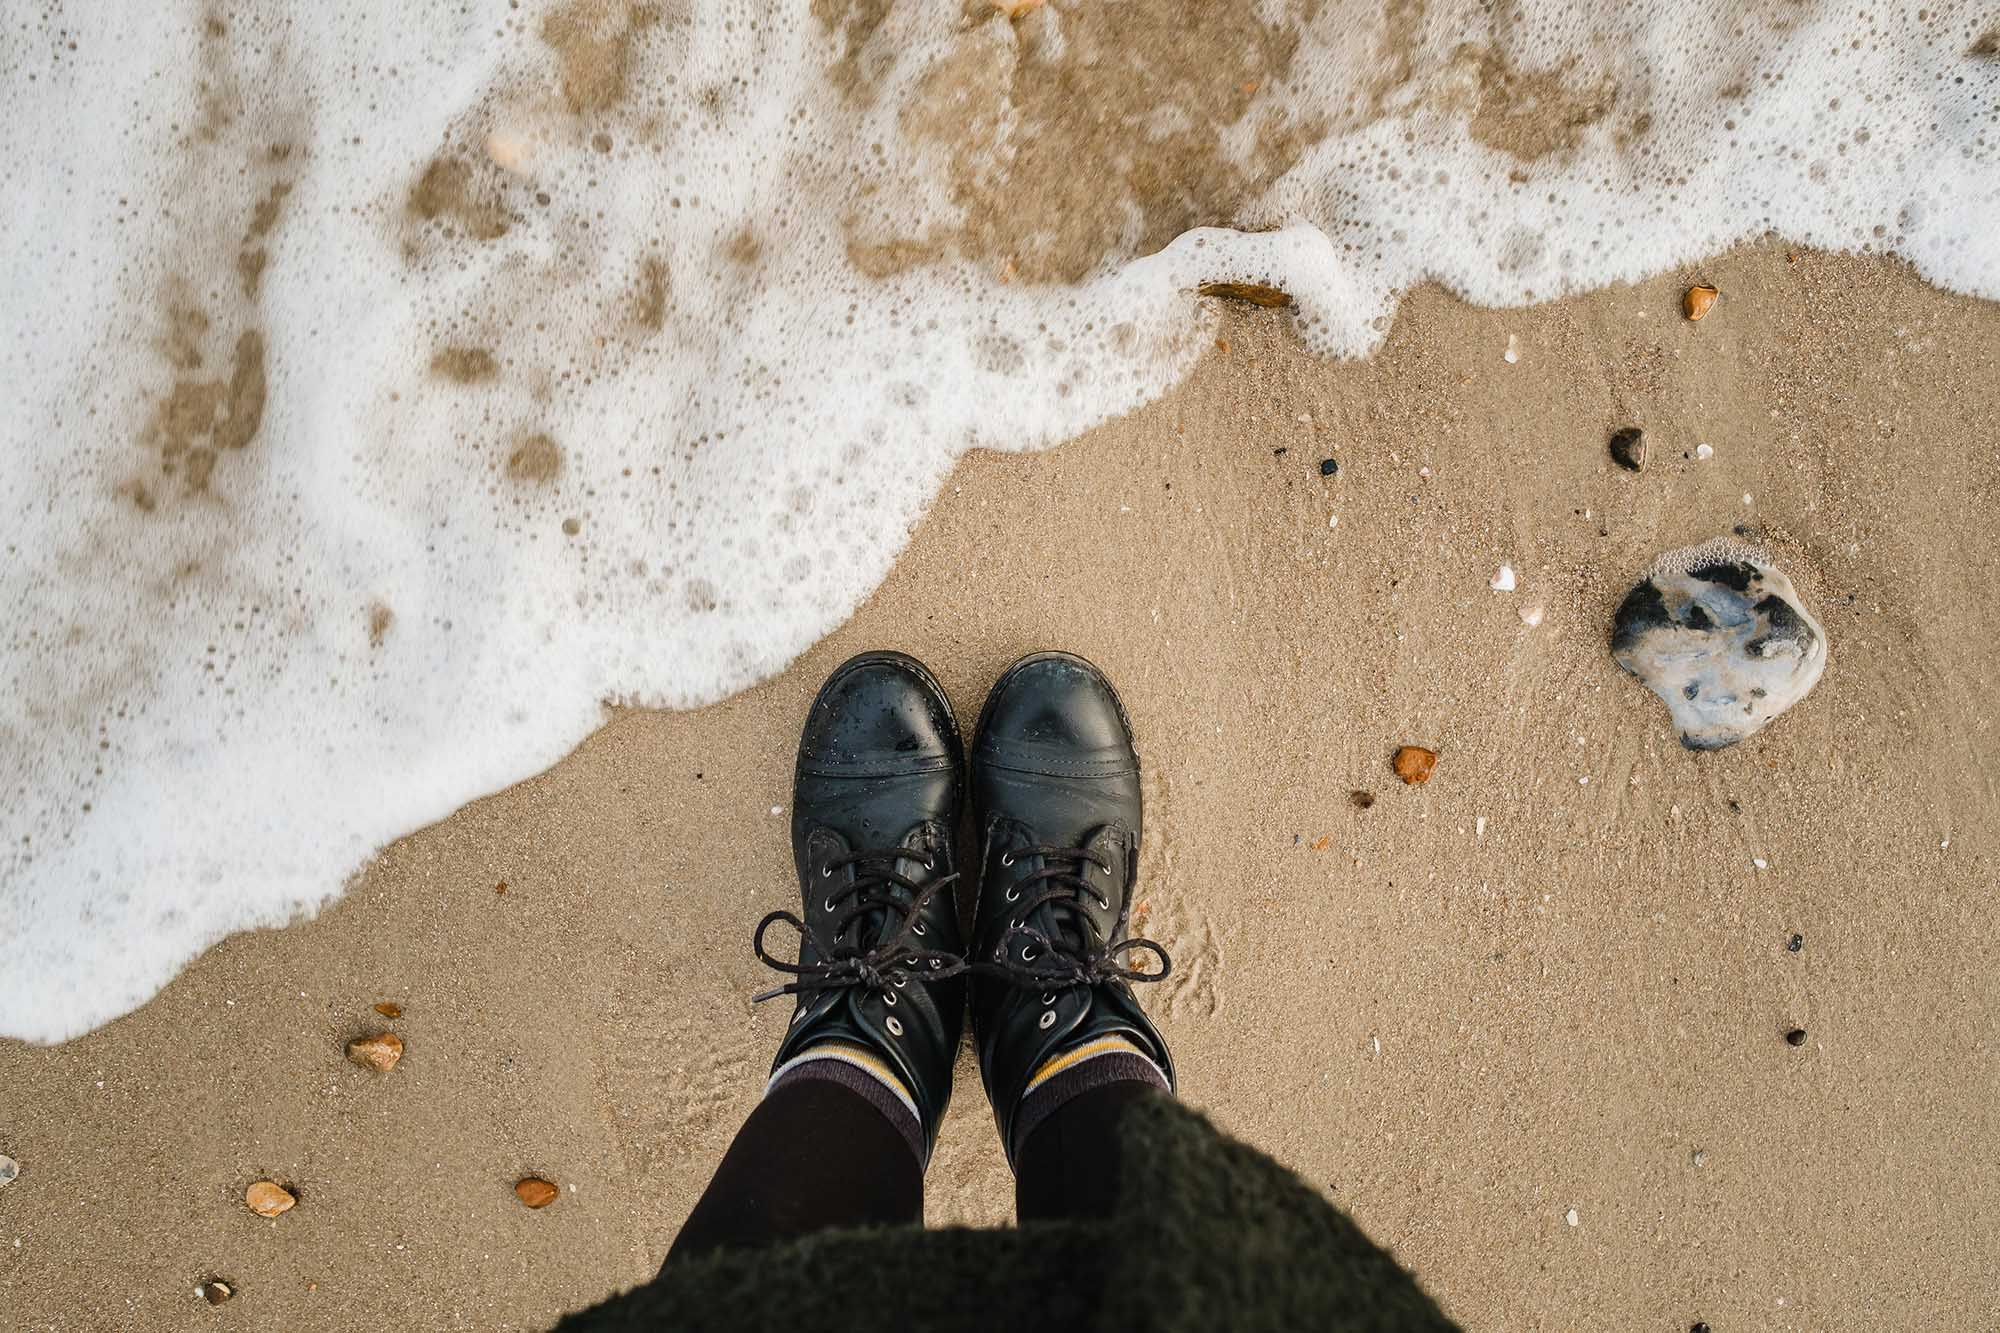 april musings on the beach